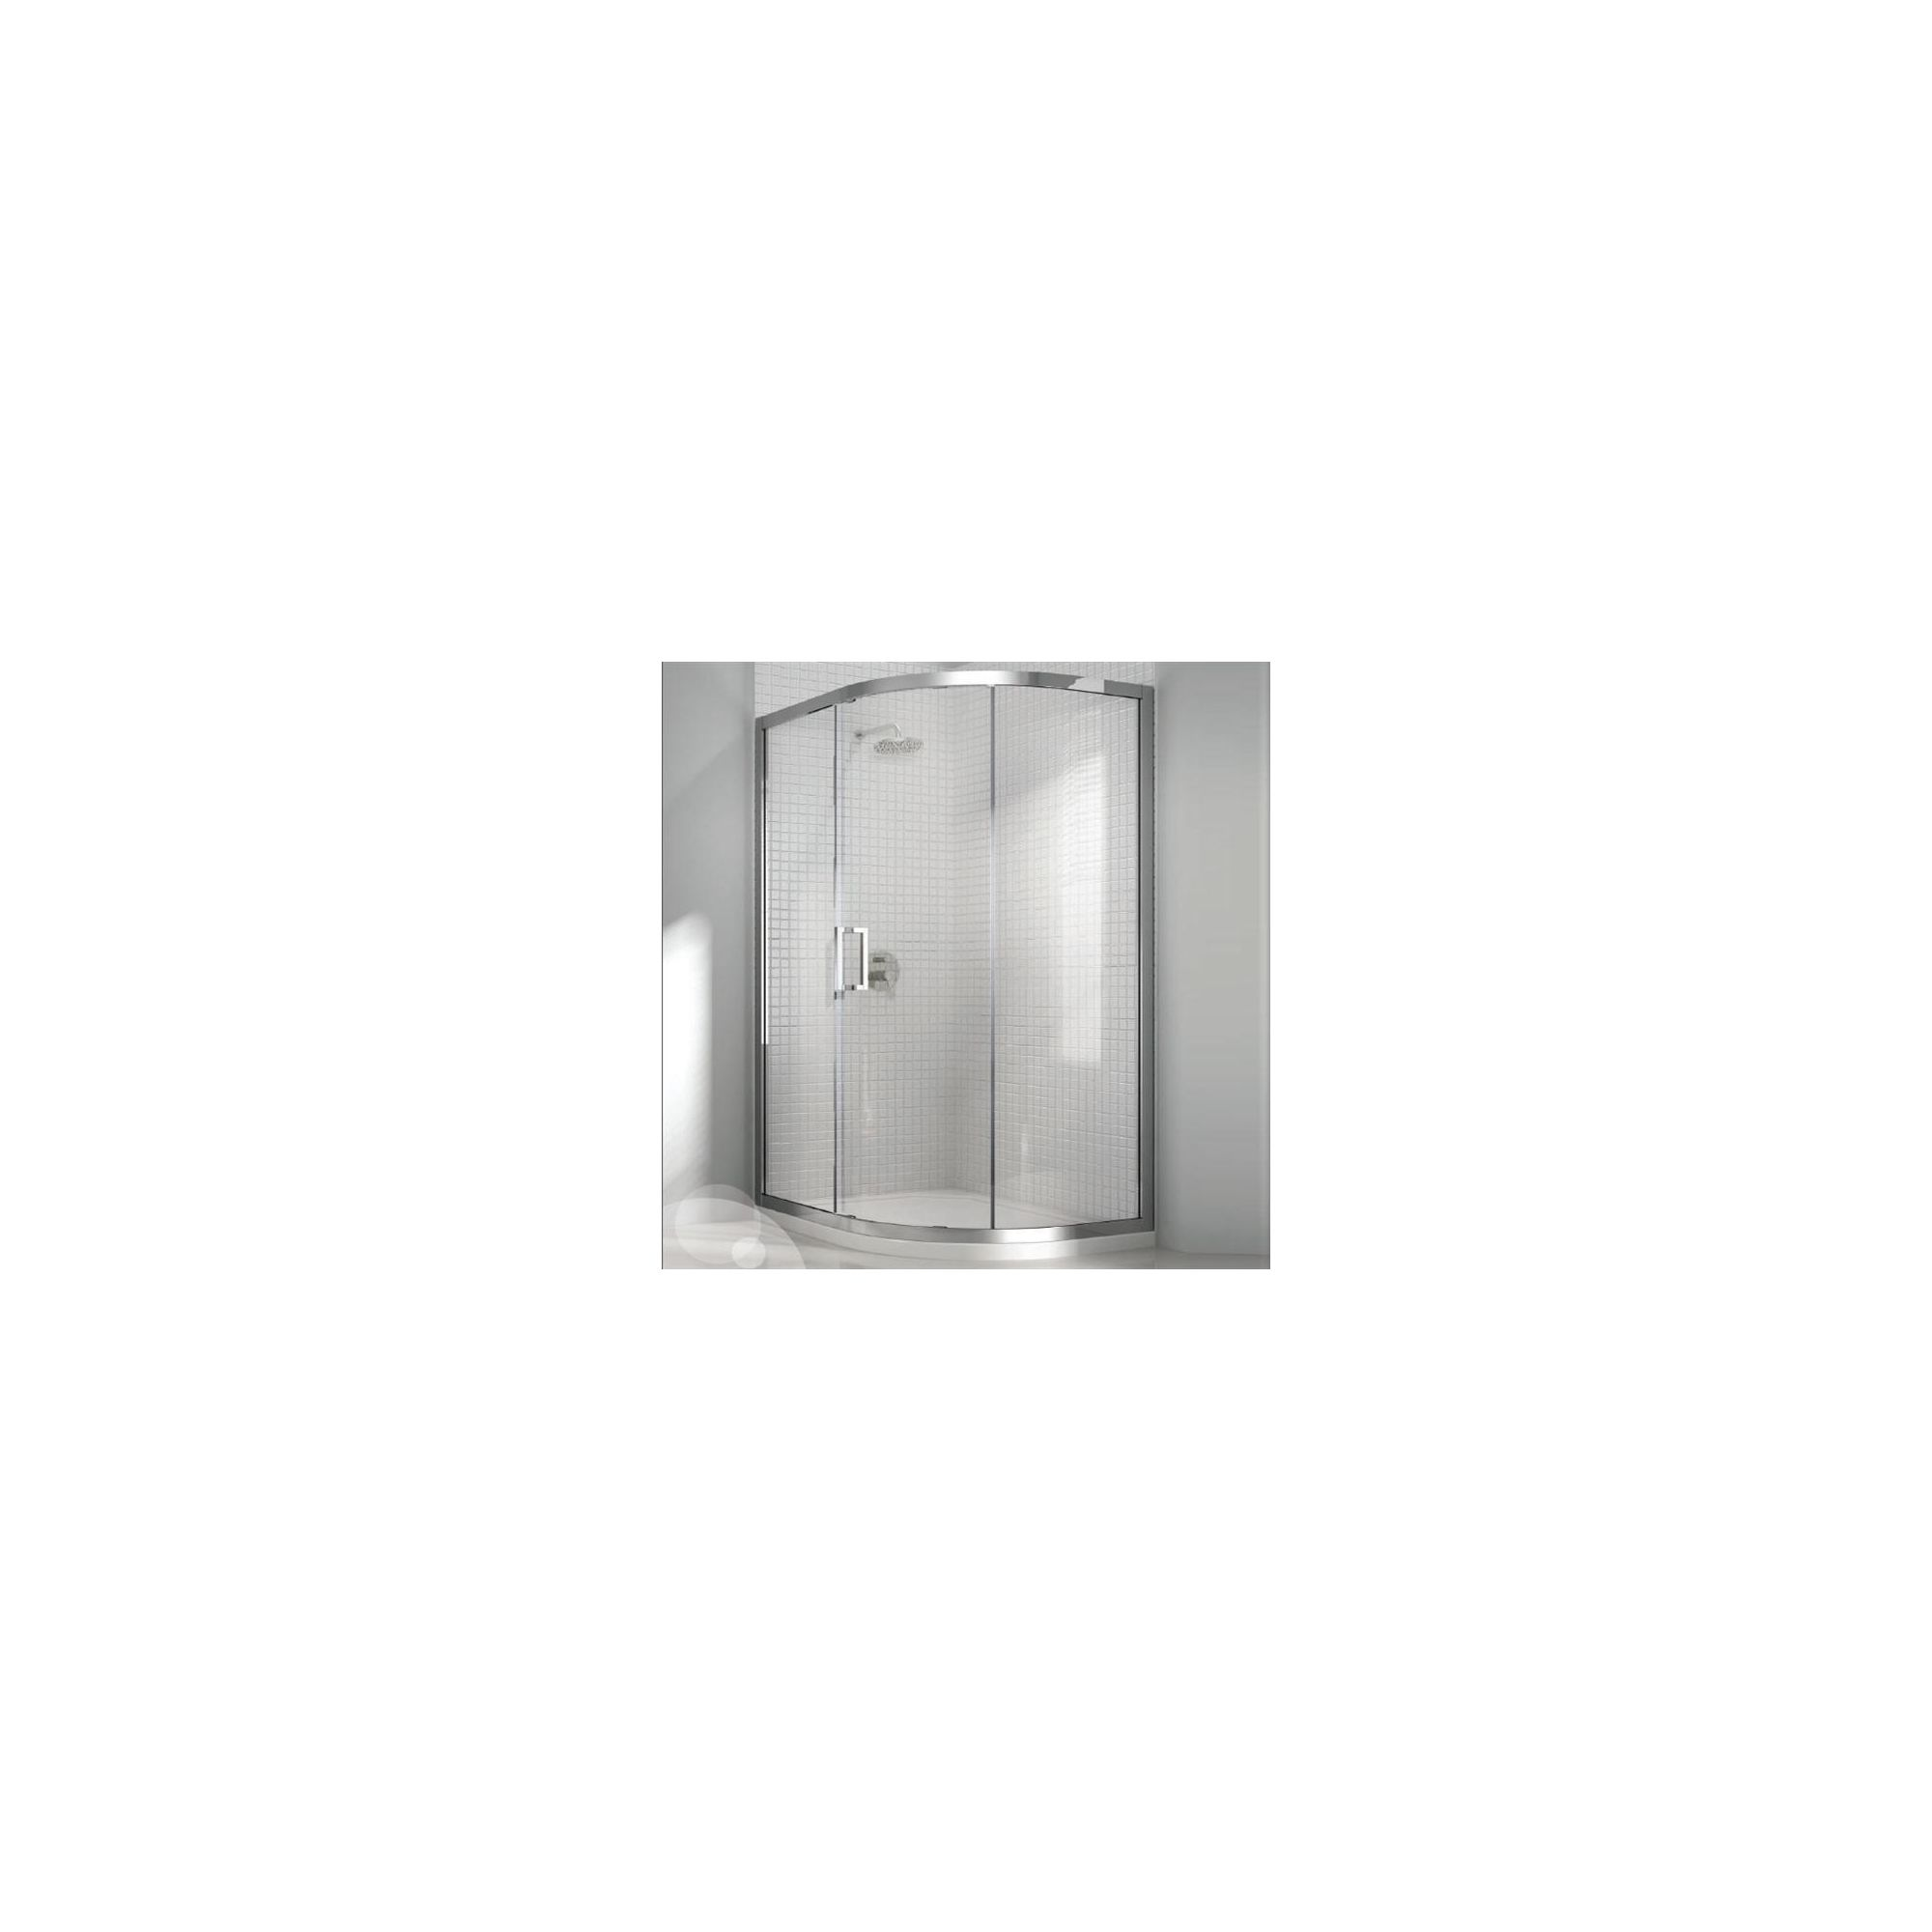 Merlyn Vivid Eight Offset Quadrant Shower Enclosure, 900mm x 760mm, Right Handed, Low Profile Tray, 8mm Glass at Tesco Direct